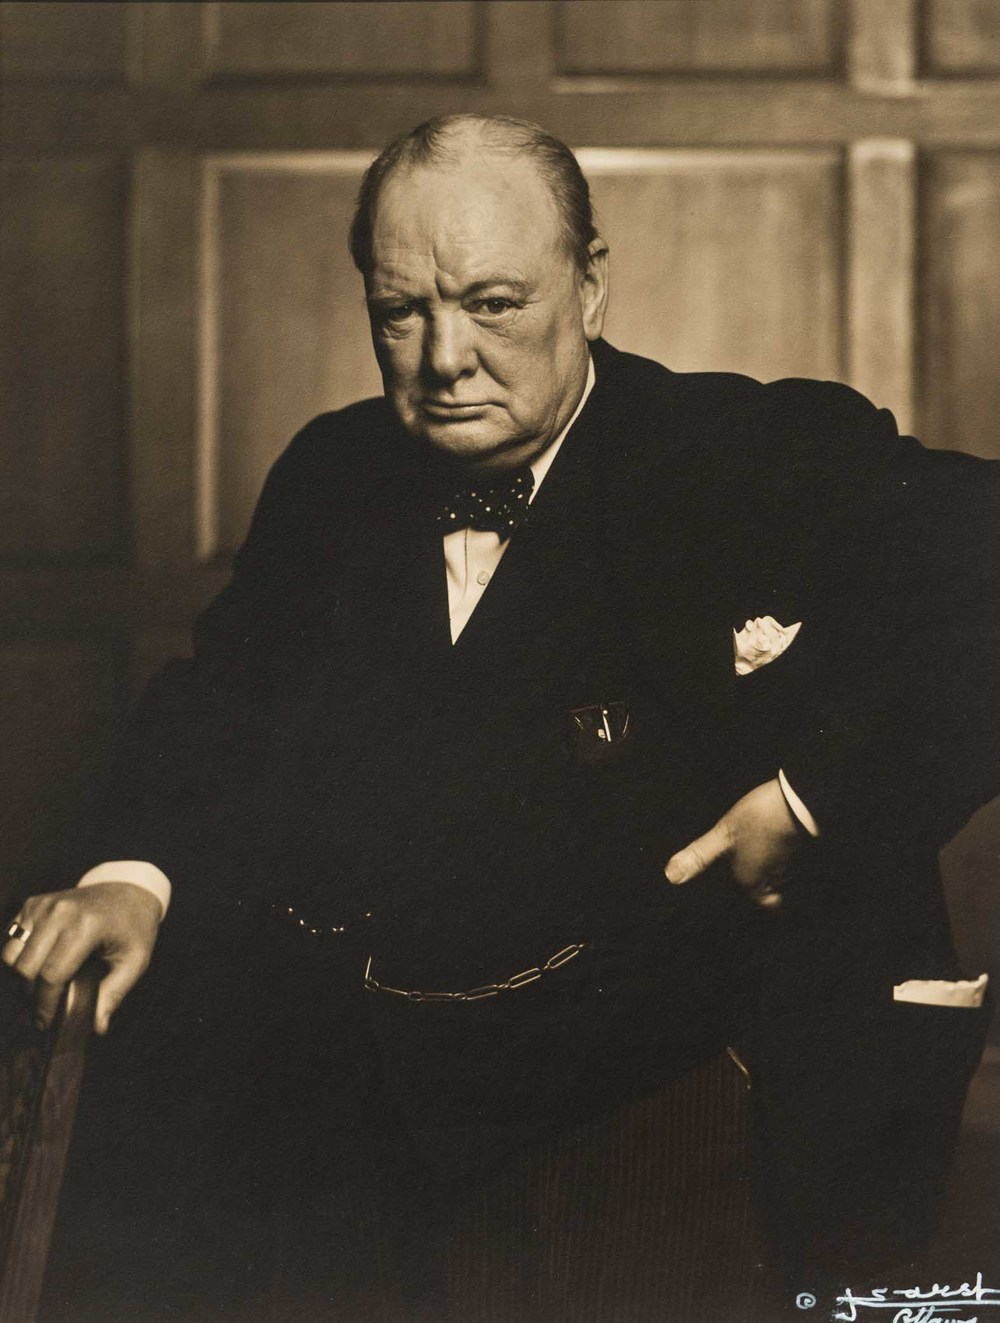 Yousuf Karsh, Winston Churchill, 1941, silver gelatin print, Gift of the Estate of David P. Hauseman, Polk Museum of Art Permanent Collection 2013.3.1 © The Estate of Yousuf Karsh